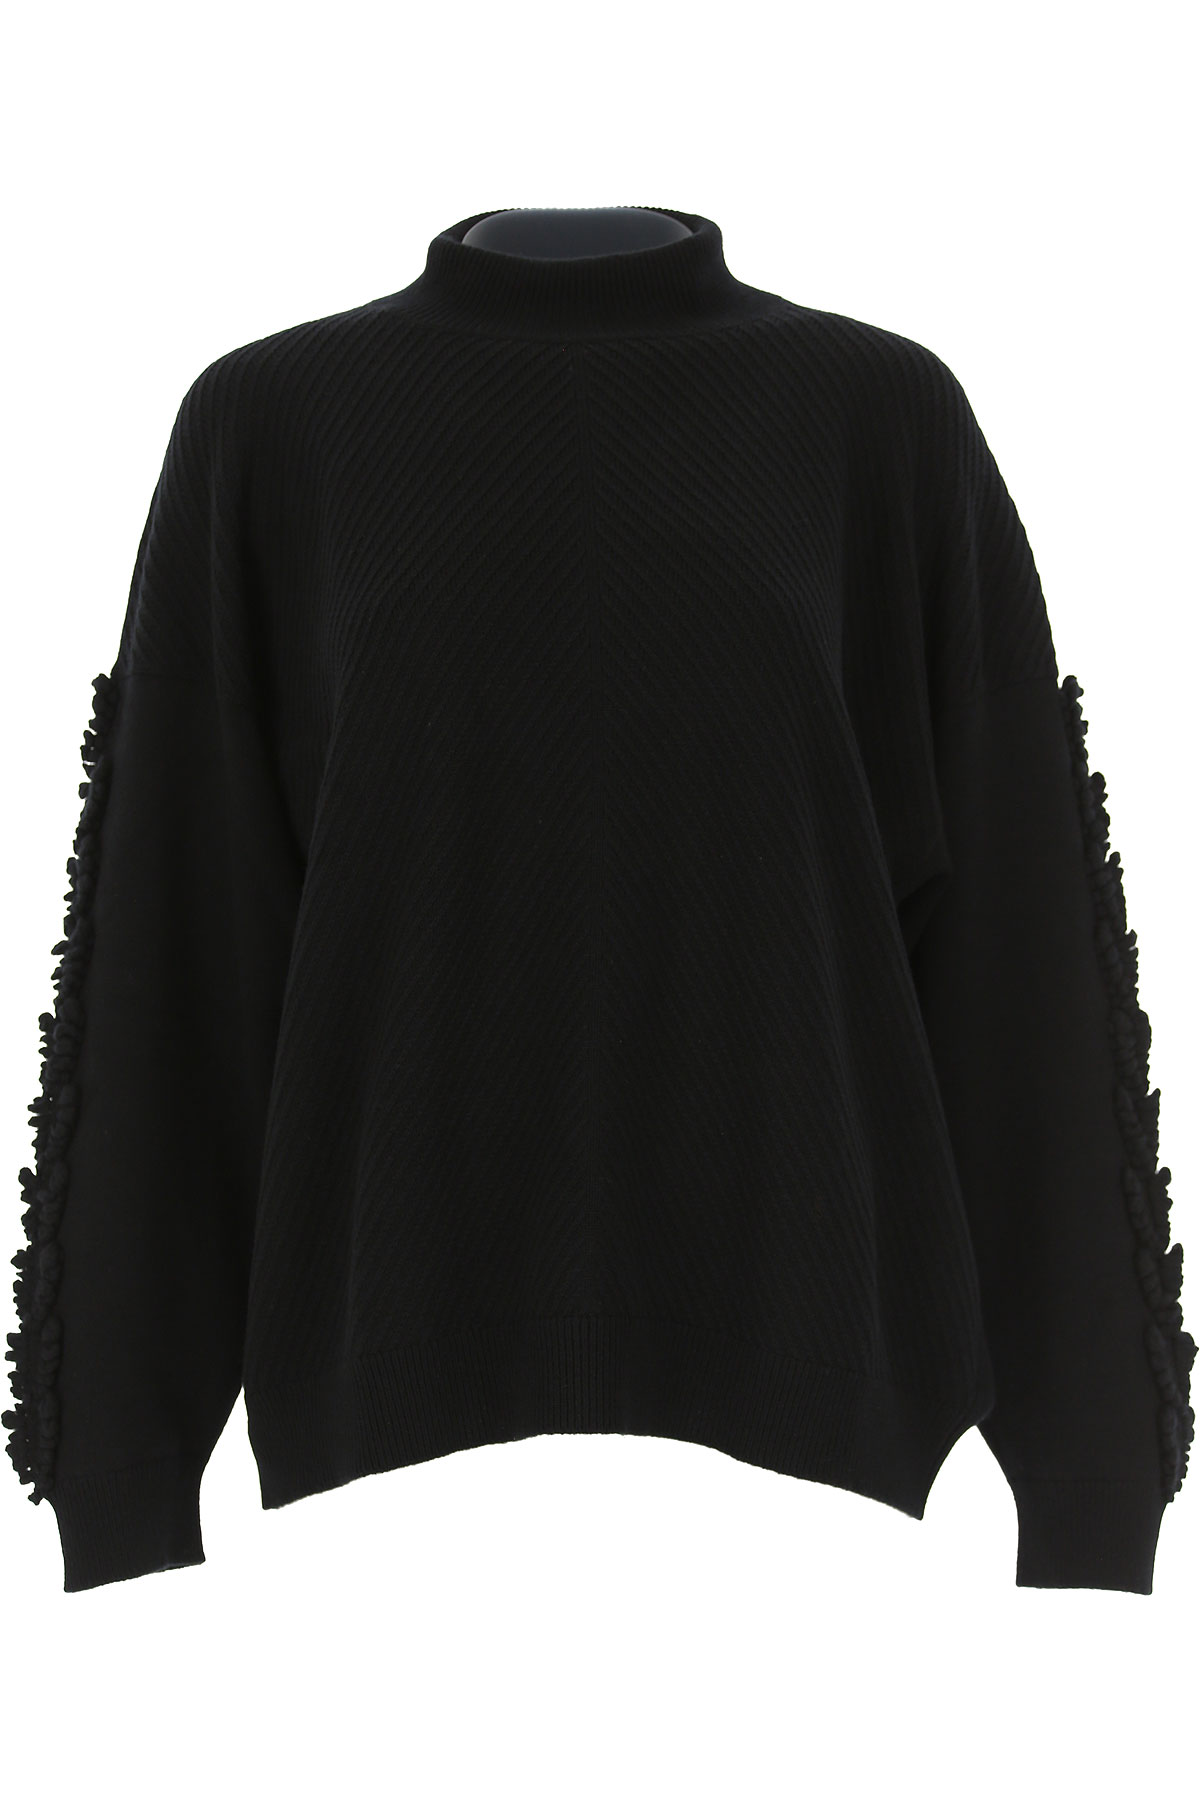 Barrie Sweater for Women Jumper On Sale, Black, Cashemere, 2019, 4 6 8